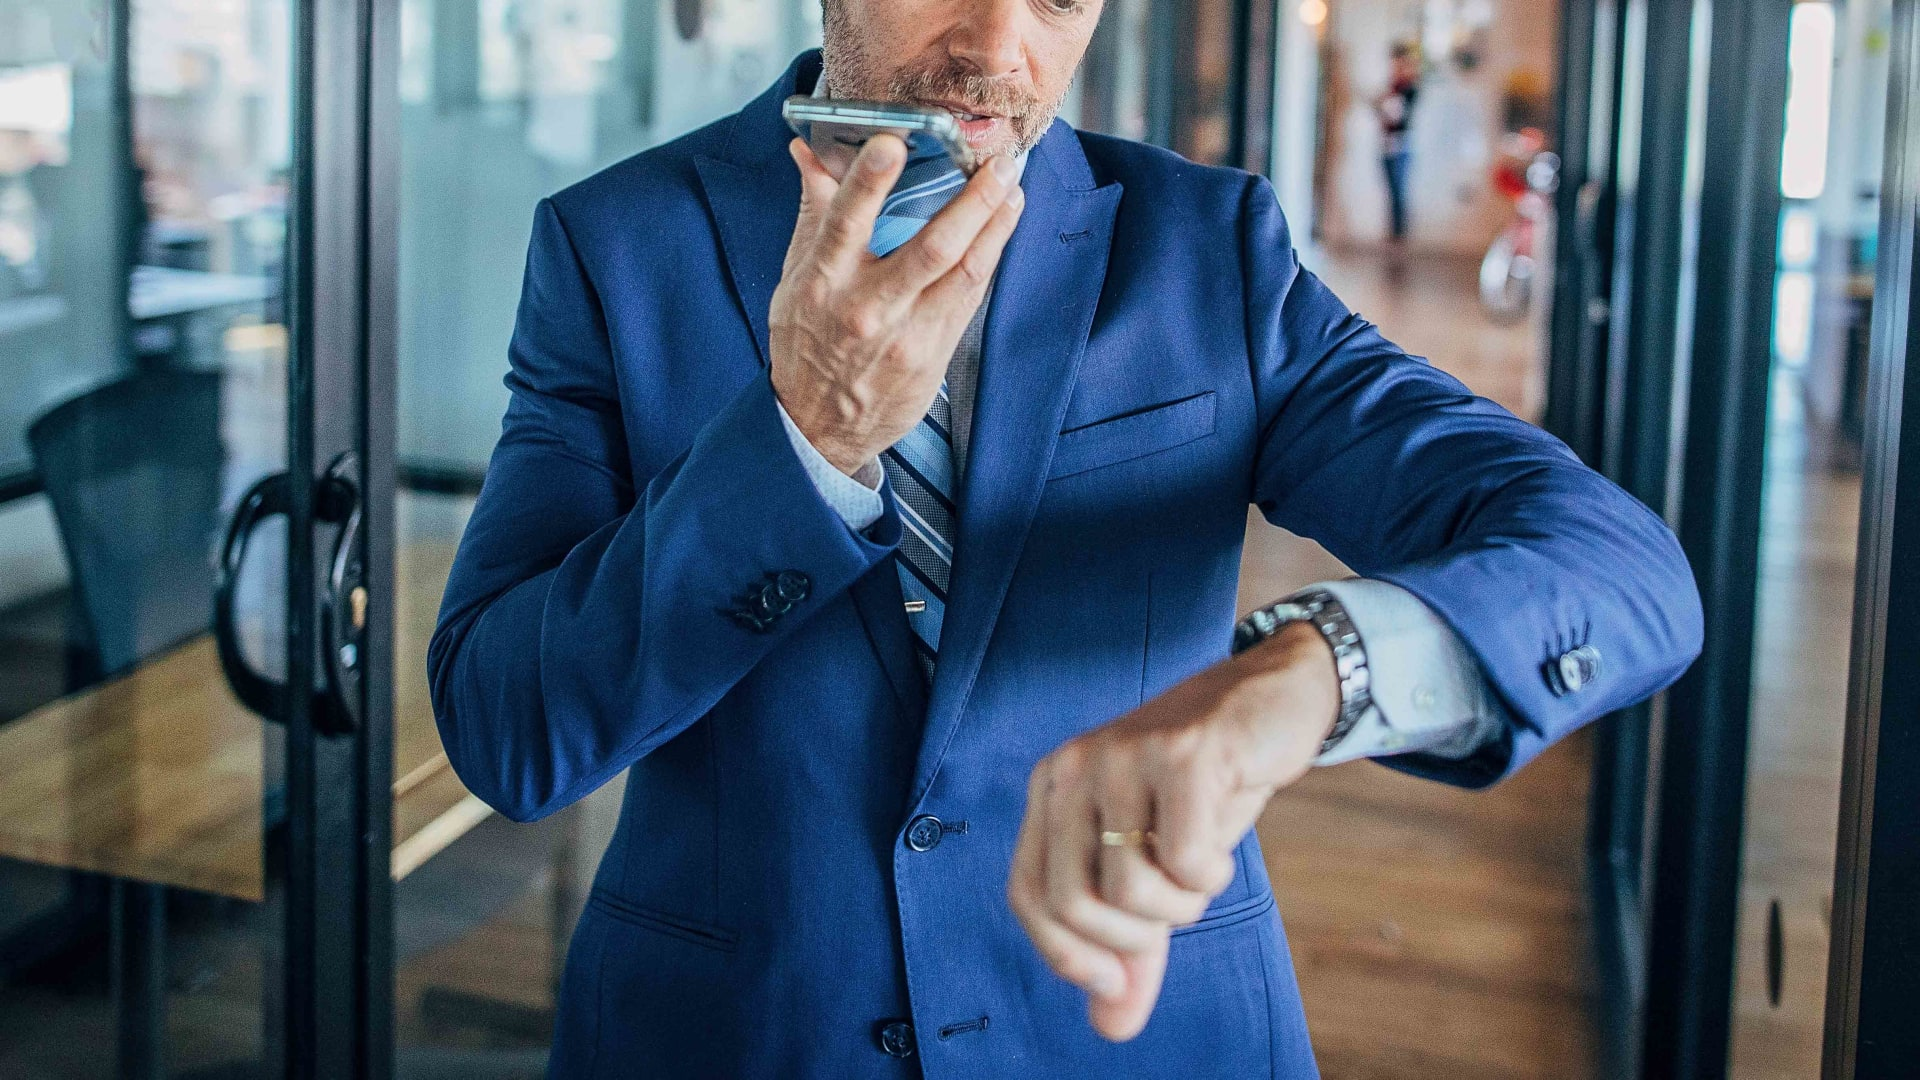 If Your Leadership Makes You Too Busy for These 3 Things, You're Performing Worse Than You Think